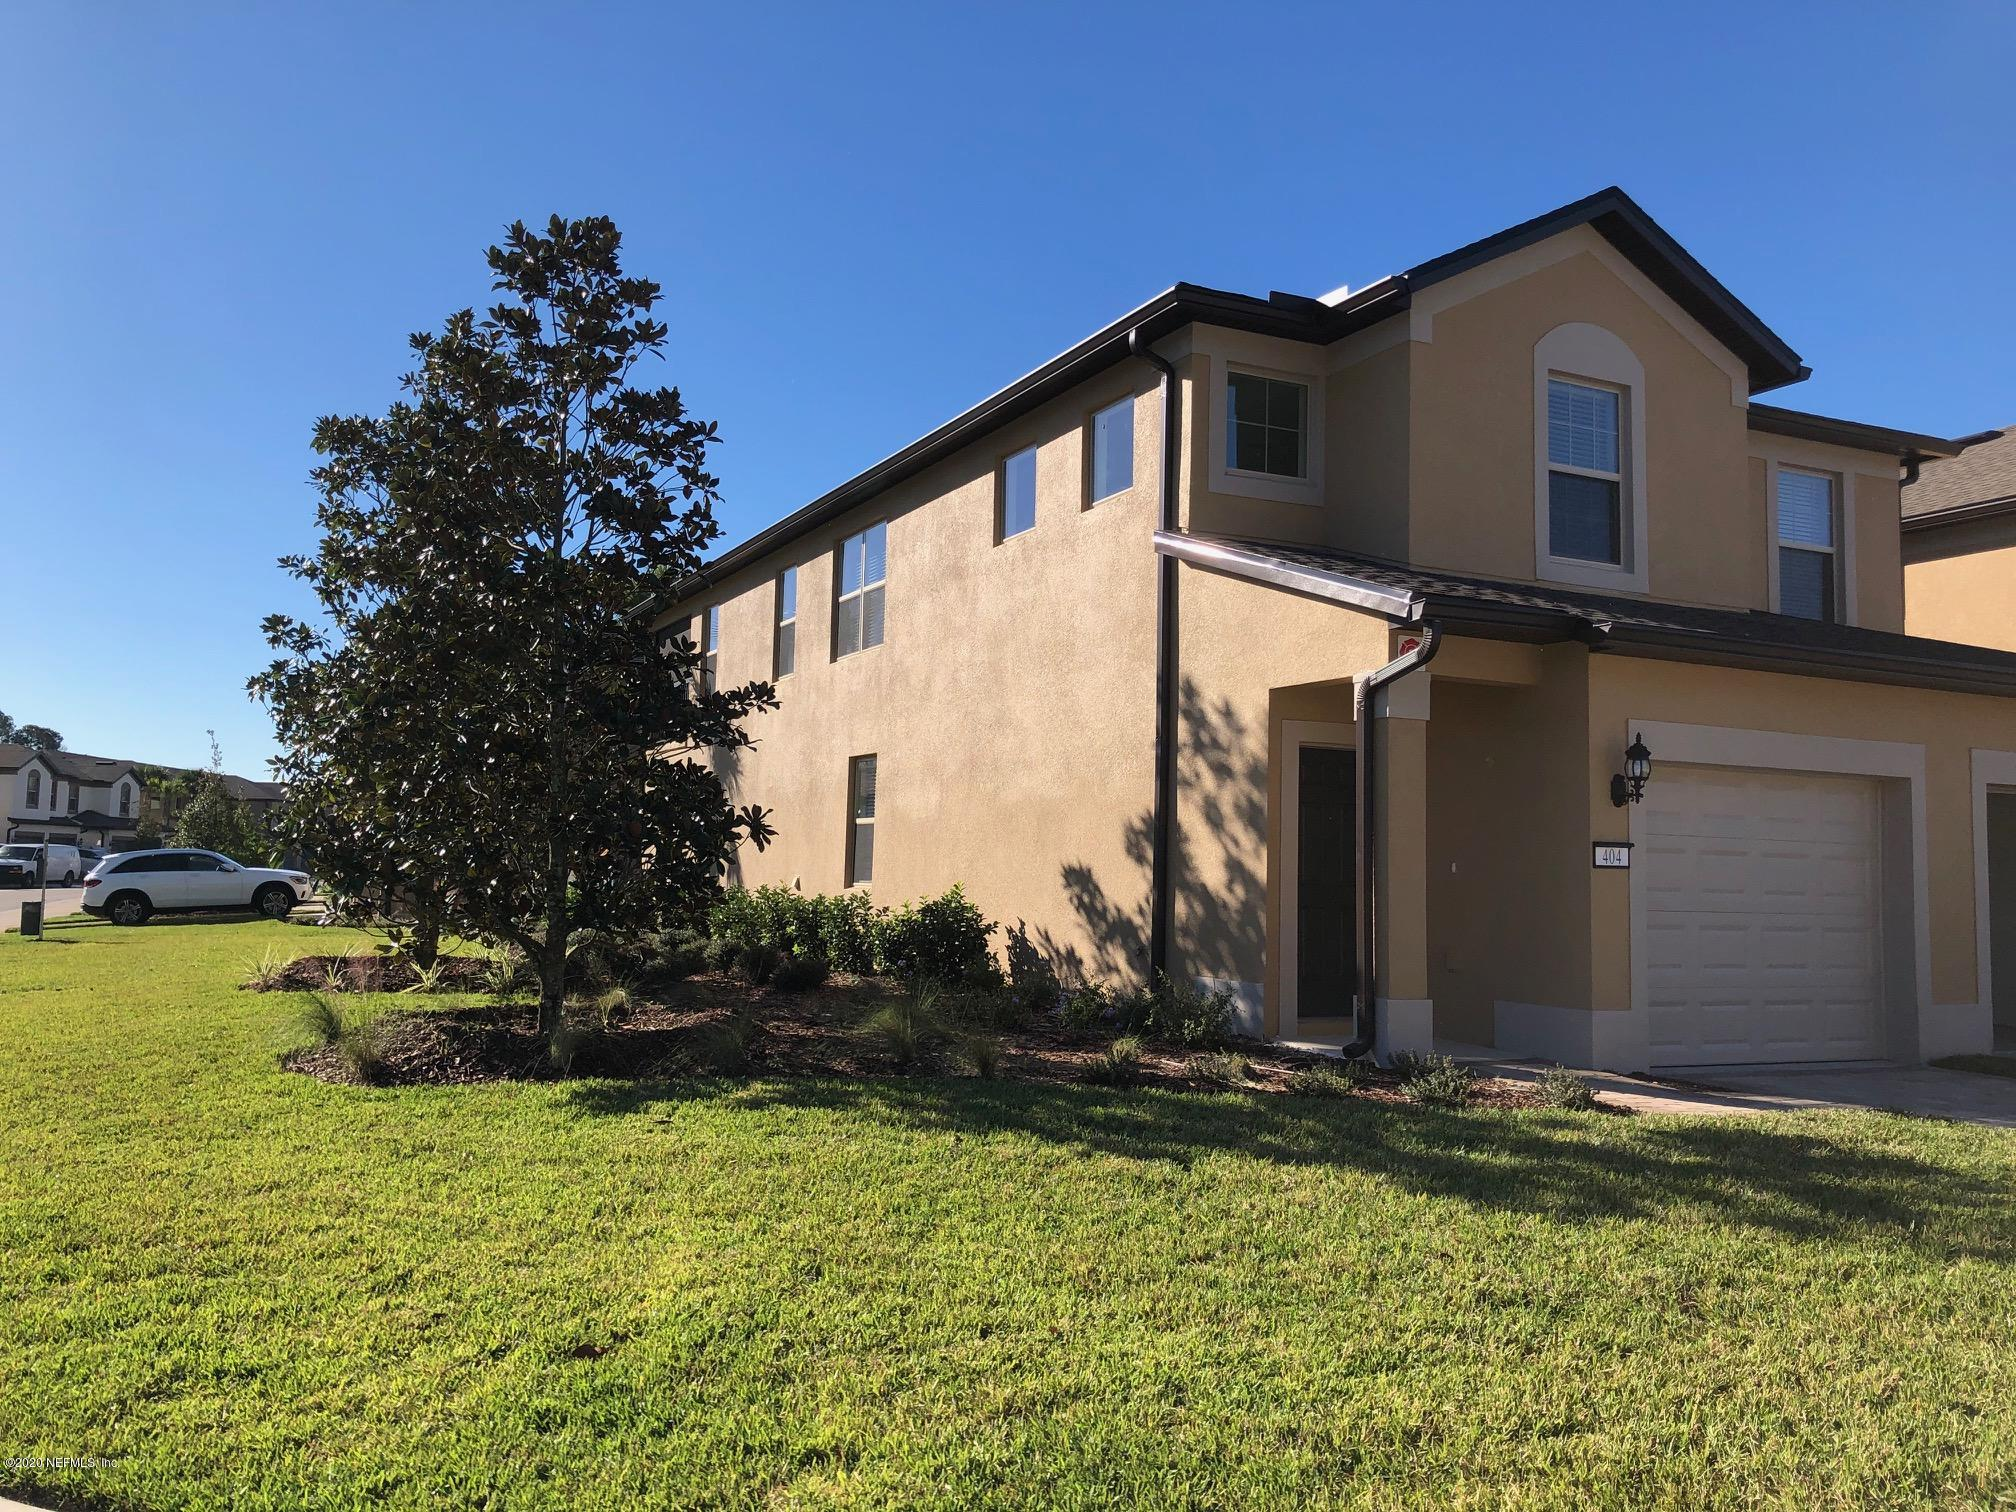 404 ORCHARD PASS, PONTE VEDRA, FLORIDA 32081, 2 Bedrooms Bedrooms, ,2 BathroomsBathrooms,Residential,For sale,ORCHARD PASS,1080168